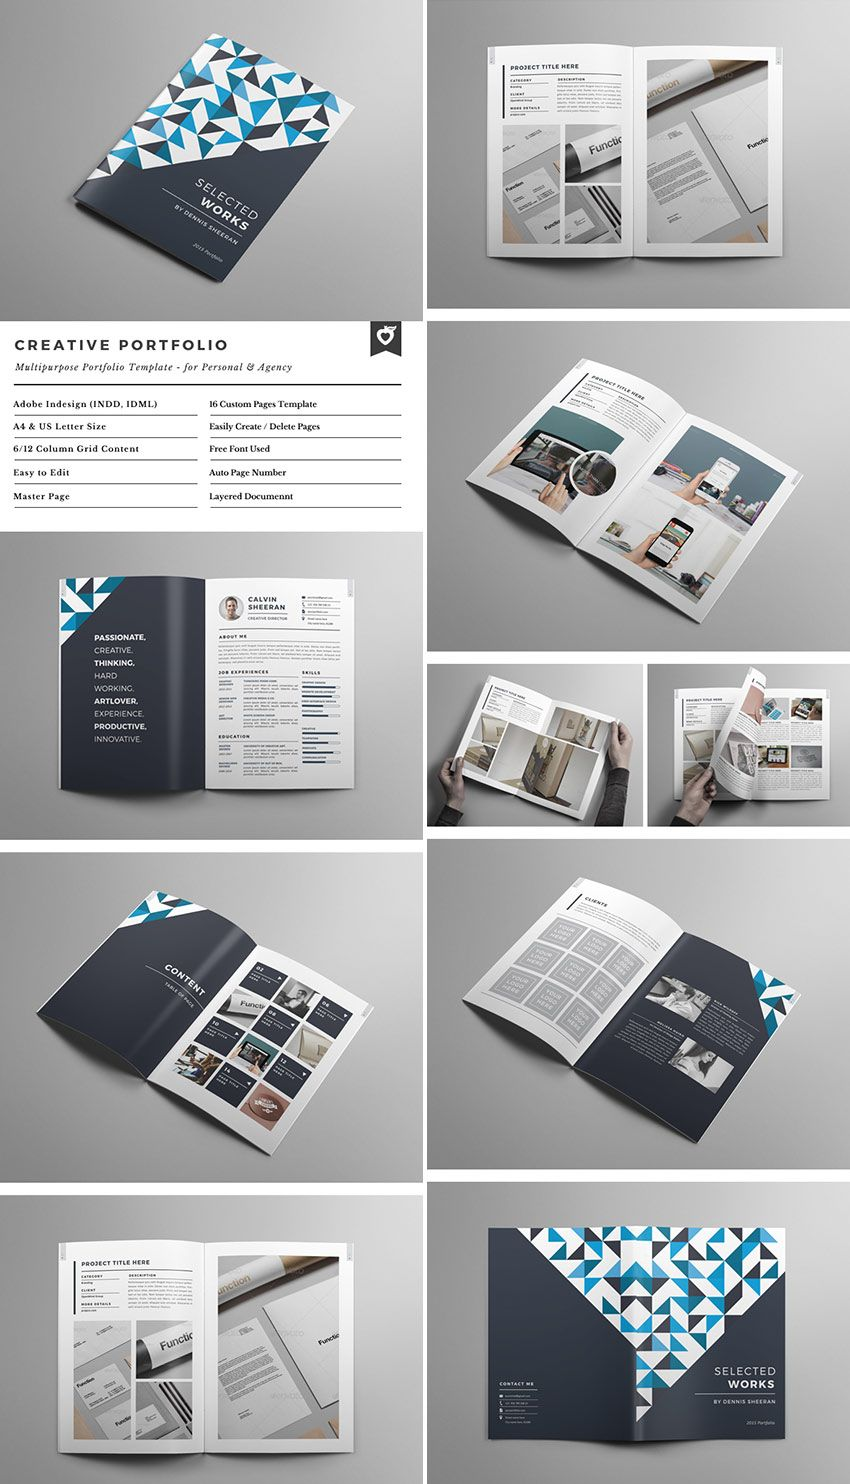 Creative Portfolio Brochure INDD Graphic Design Editorial - Portfolio brochure template